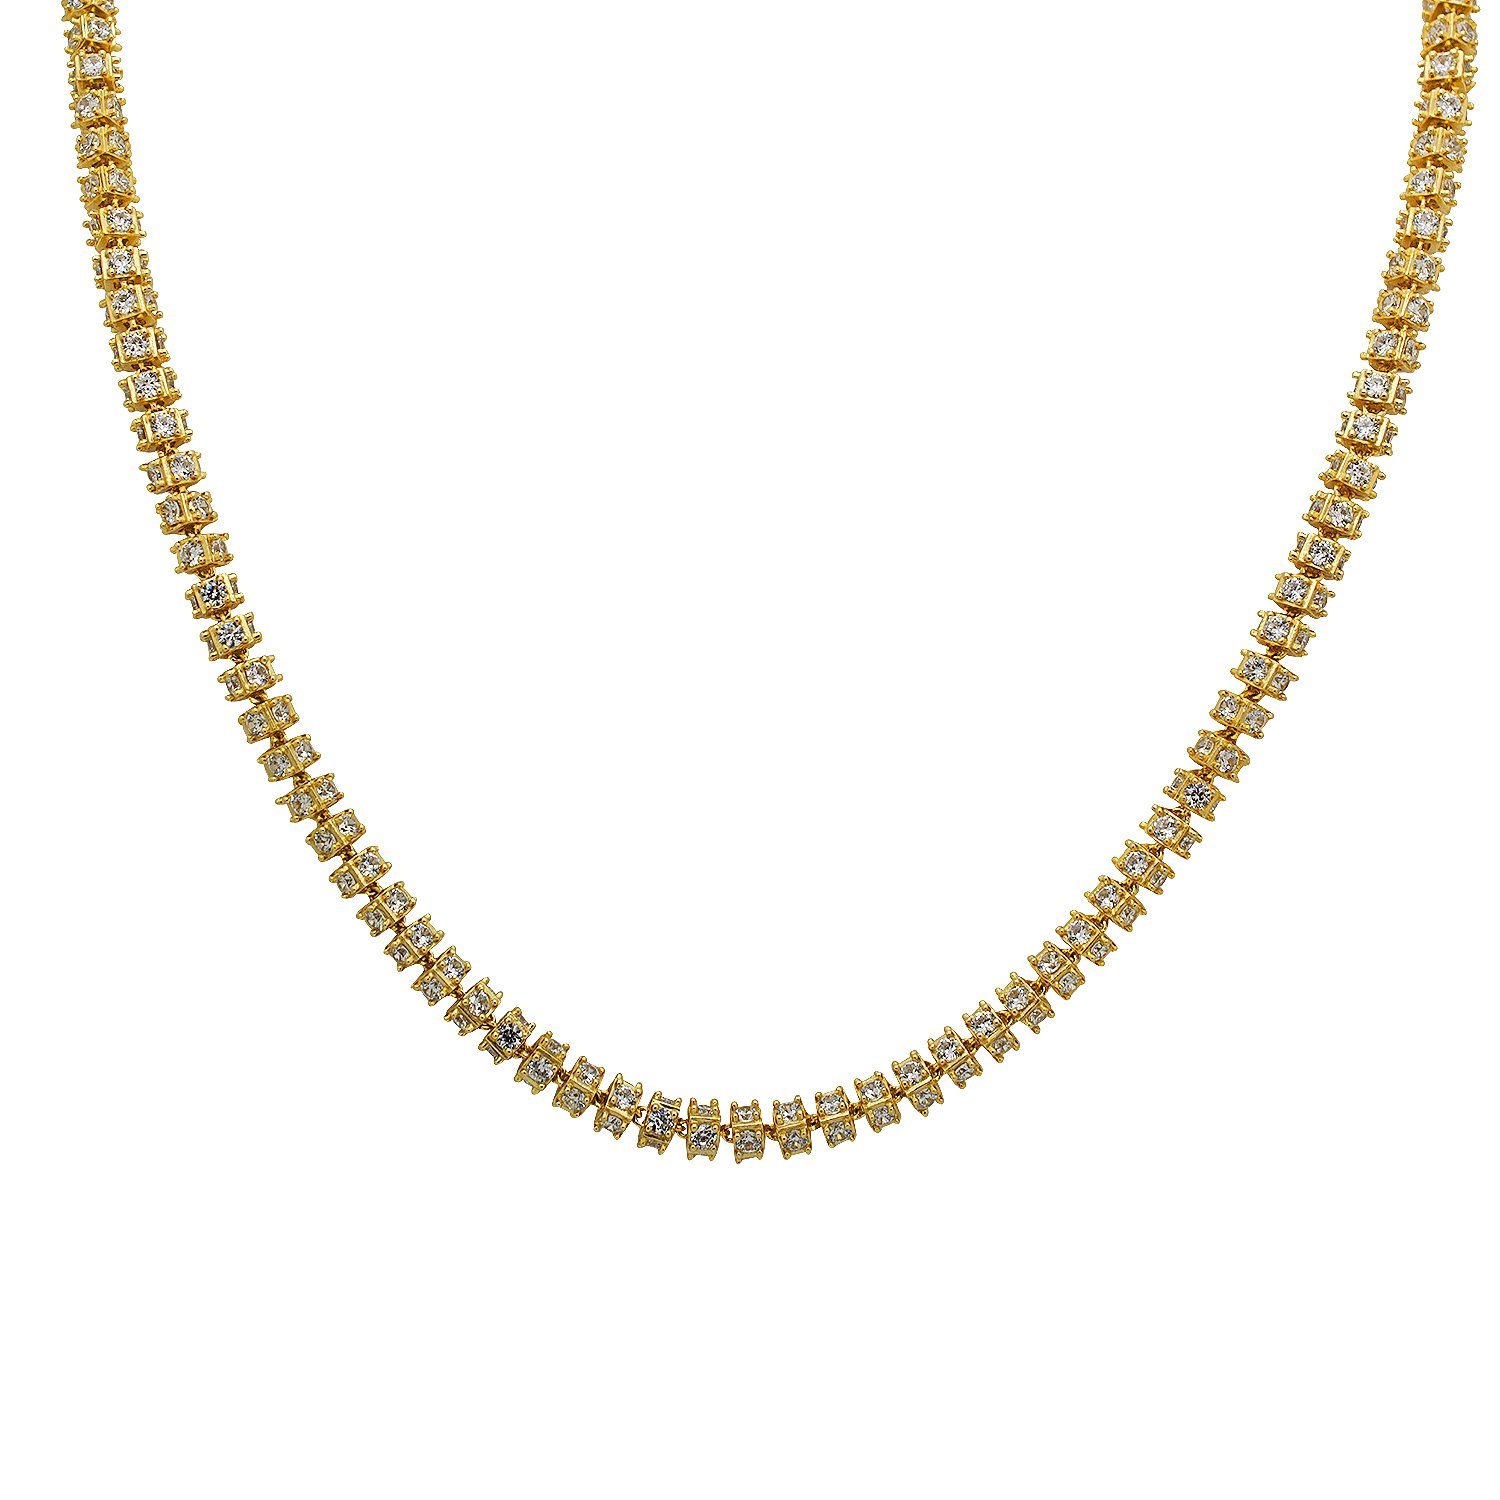 925 Sterling Silver Yellow Gold-Tone Iced Out Hip Hop Bling Infiniti 1 Row Cubic Zirconia Necklace Chain 24''